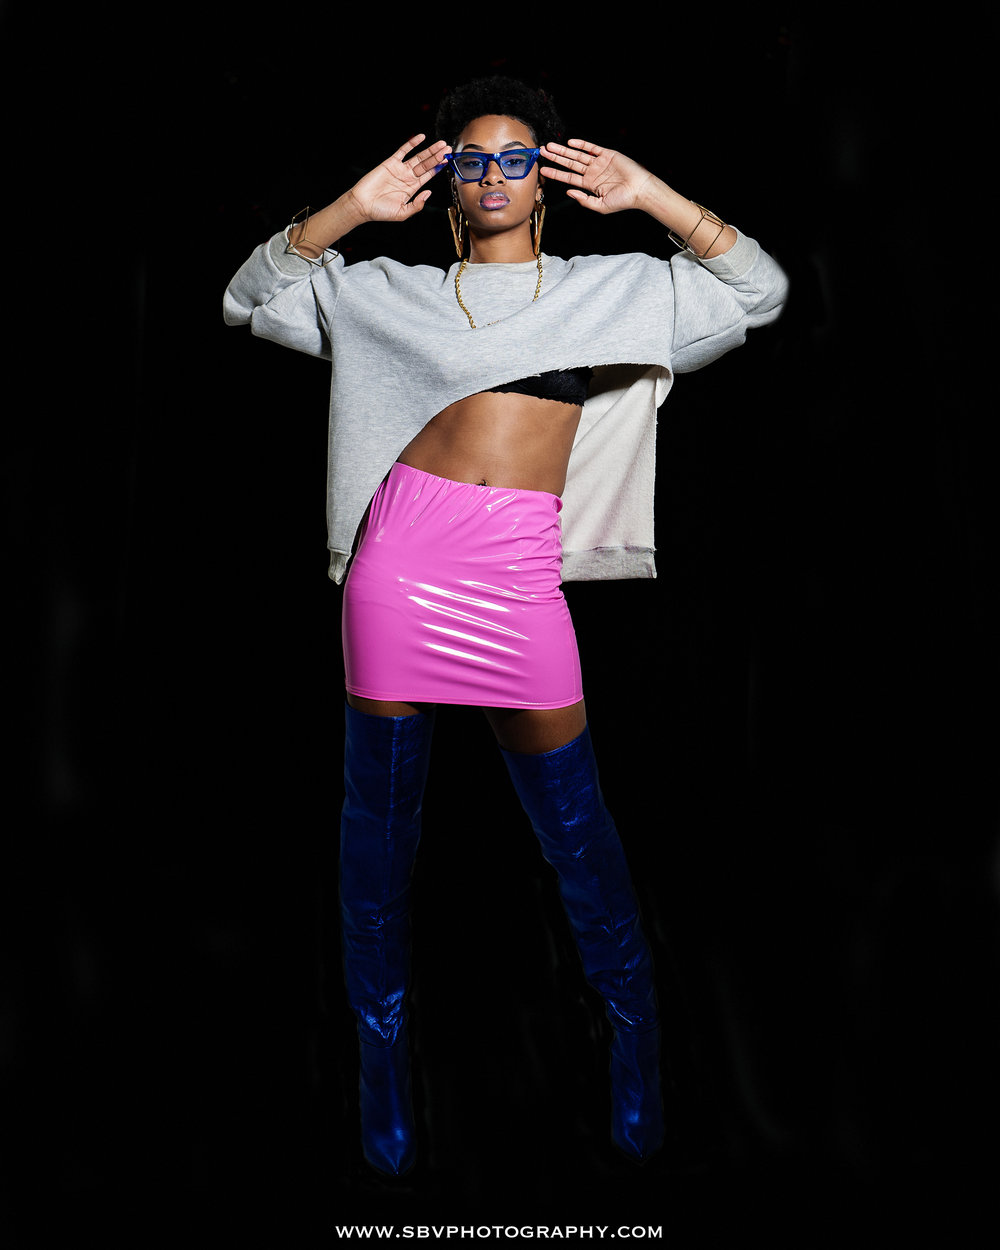 A modeling portfolio session with Emoni B. in a pink latex skirt.